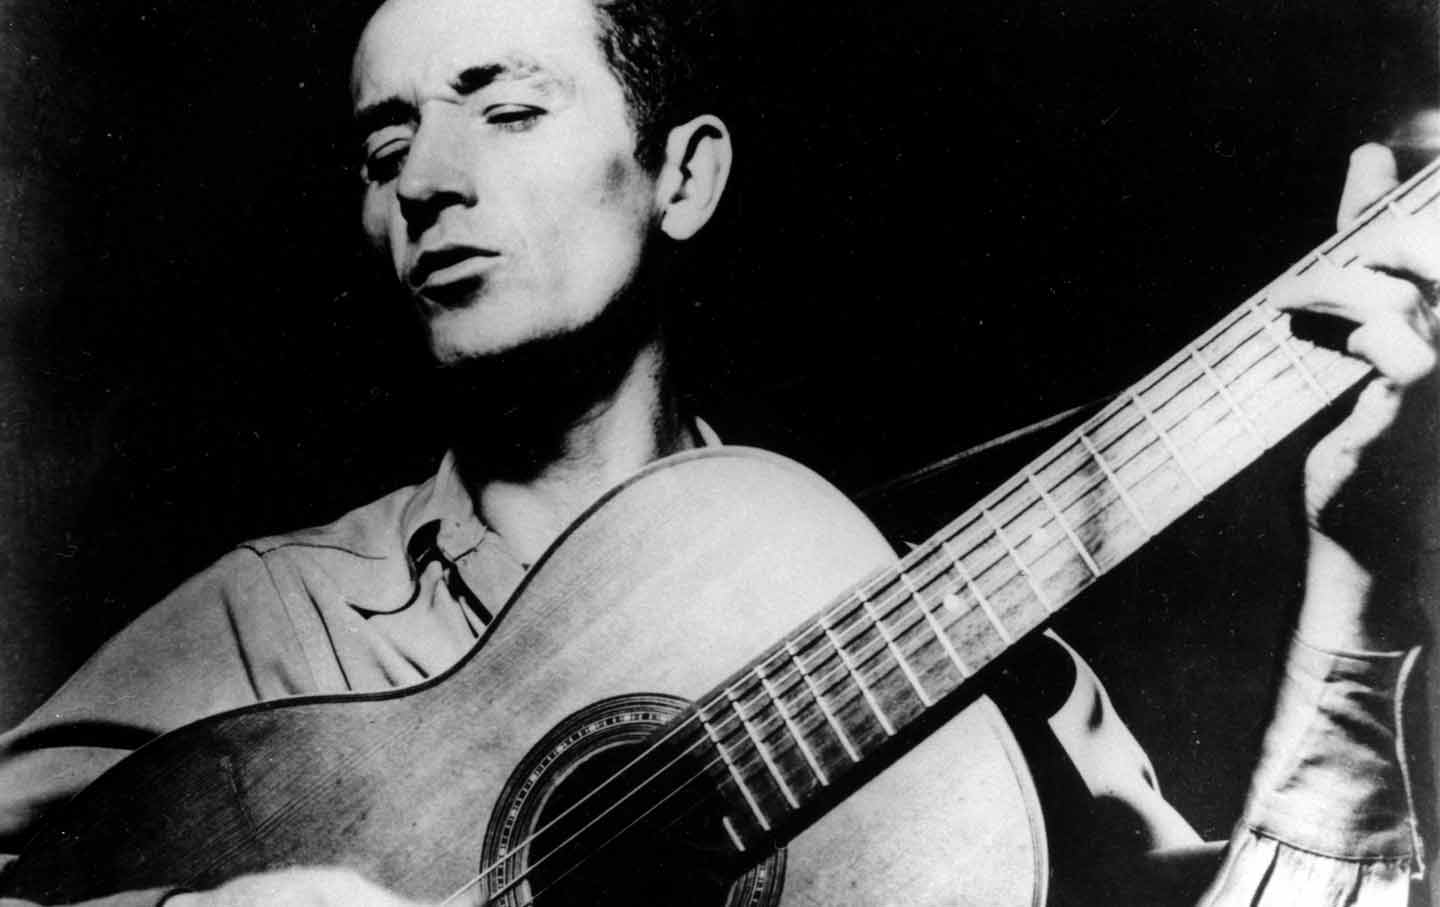 woody-guthrie-guitar-playing-ap-img